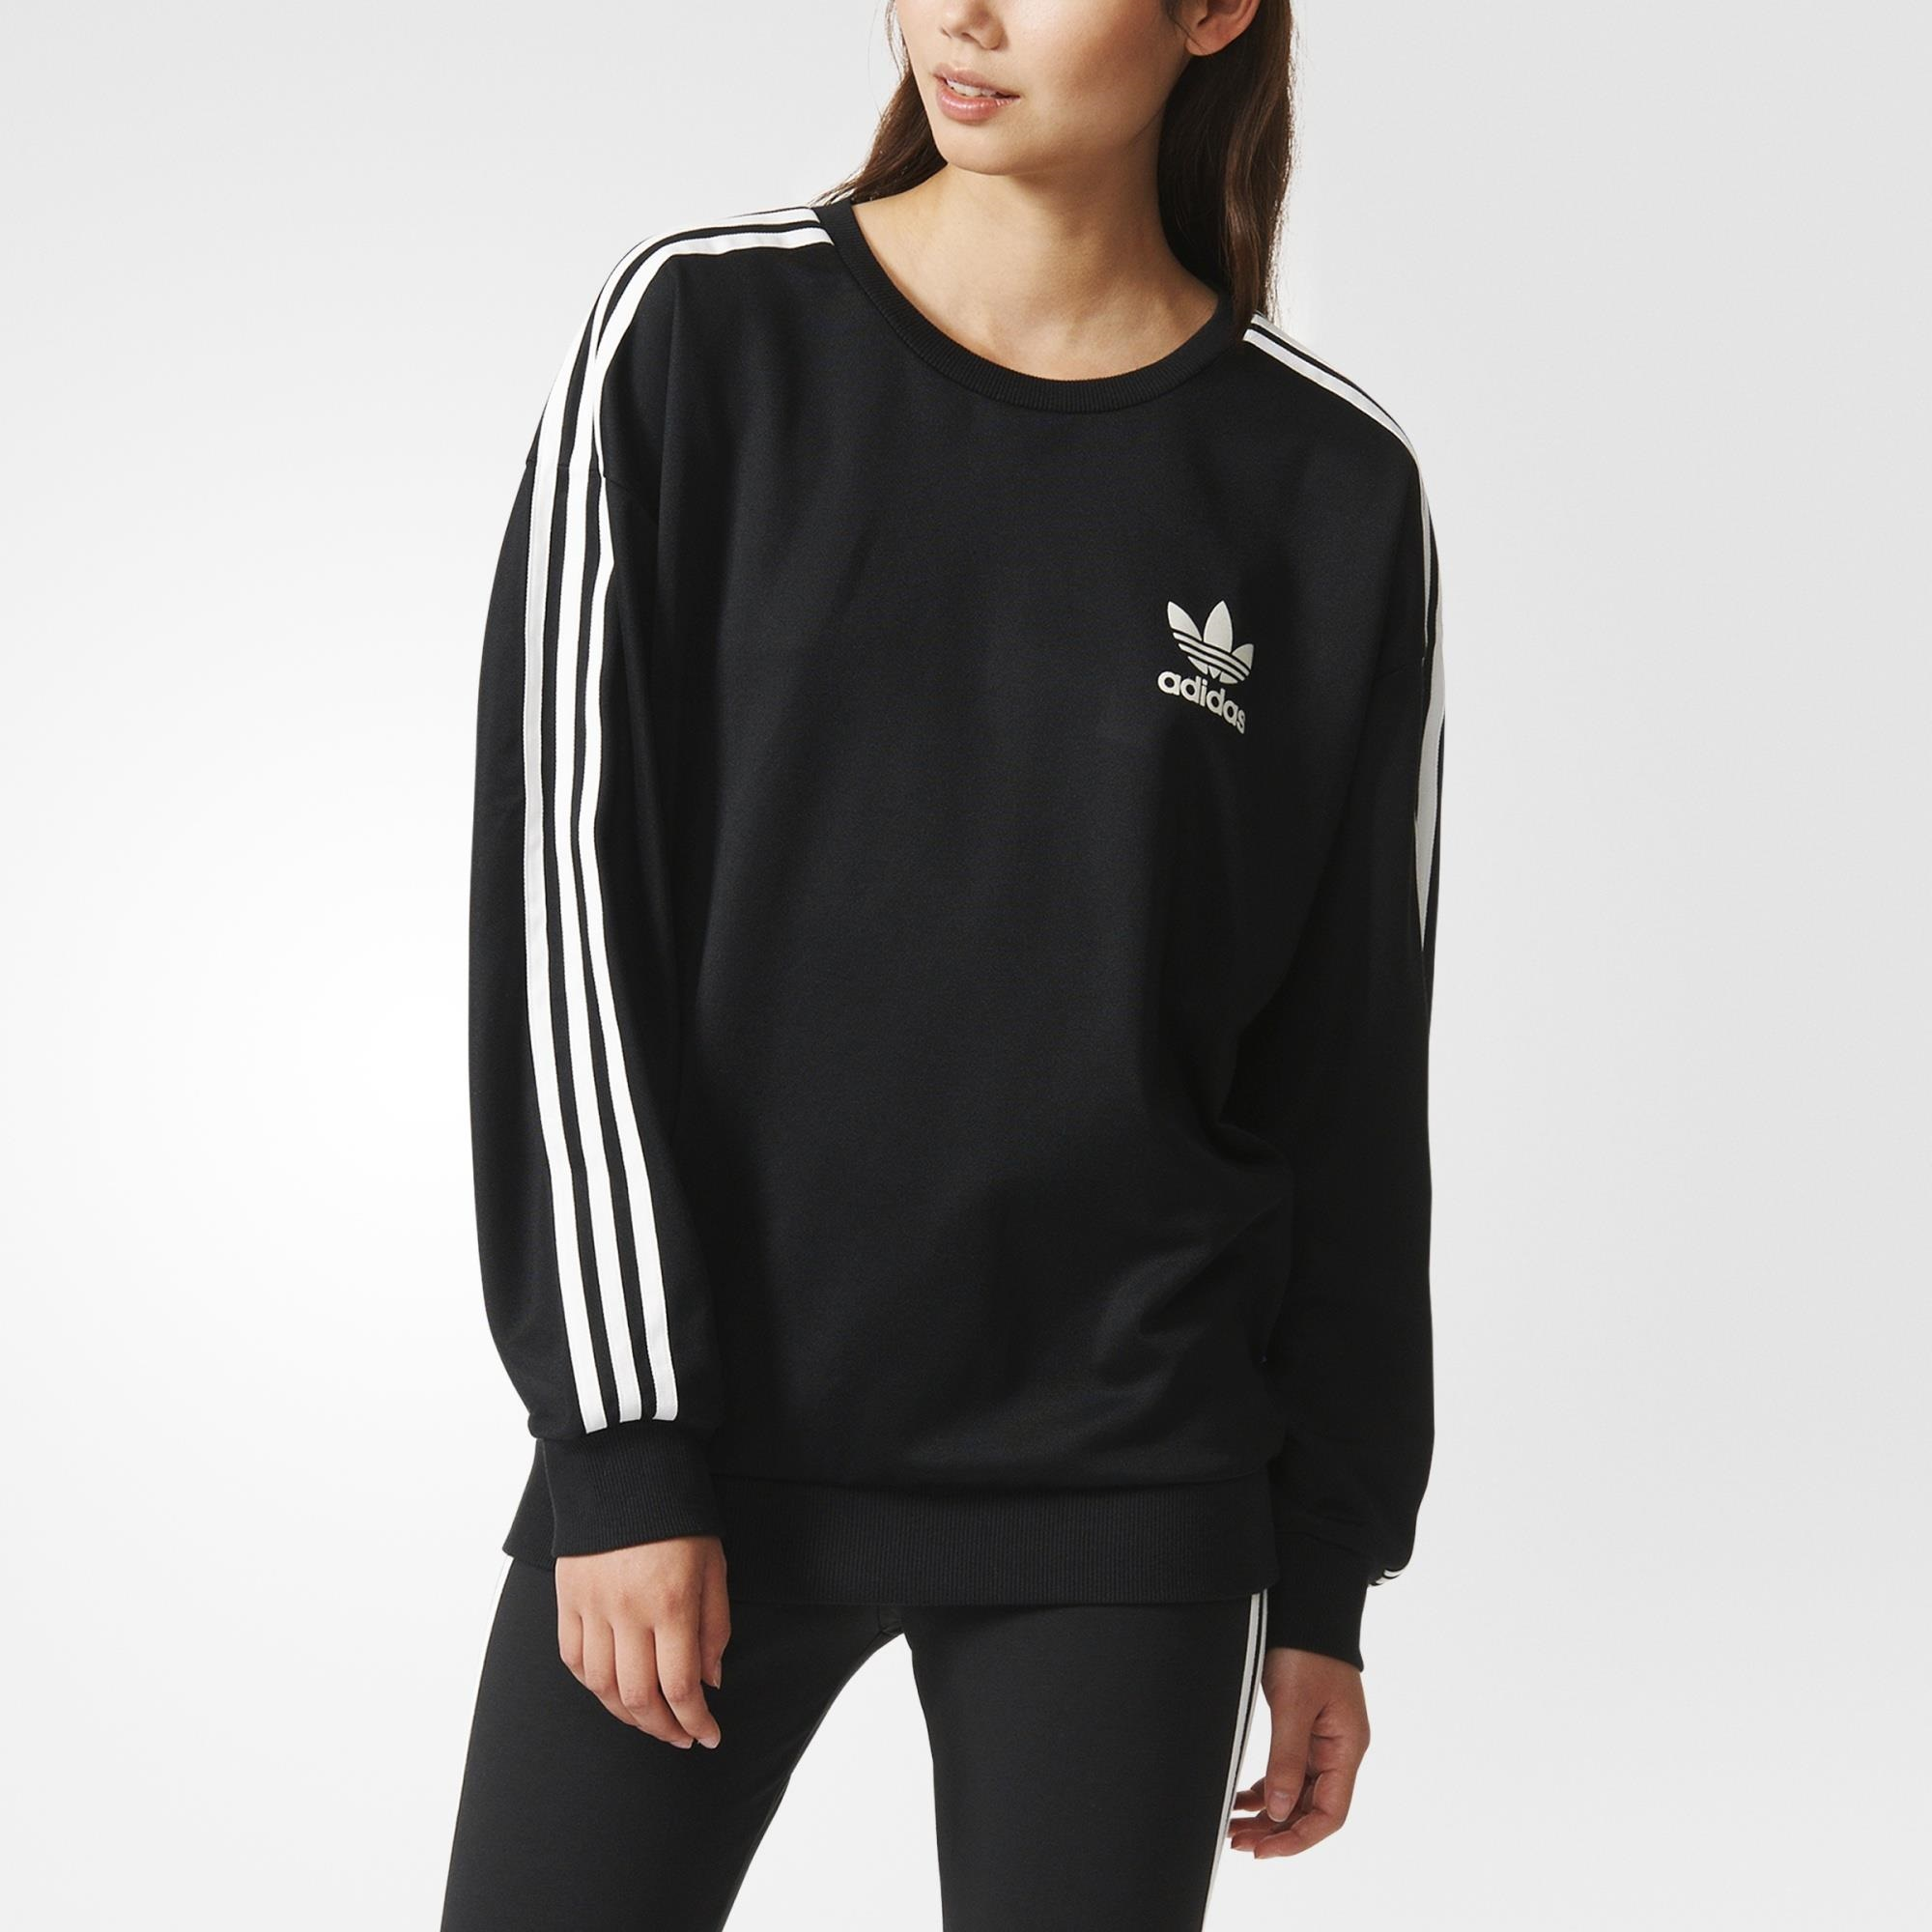 Adidas Sweater – Coming with Great Features!